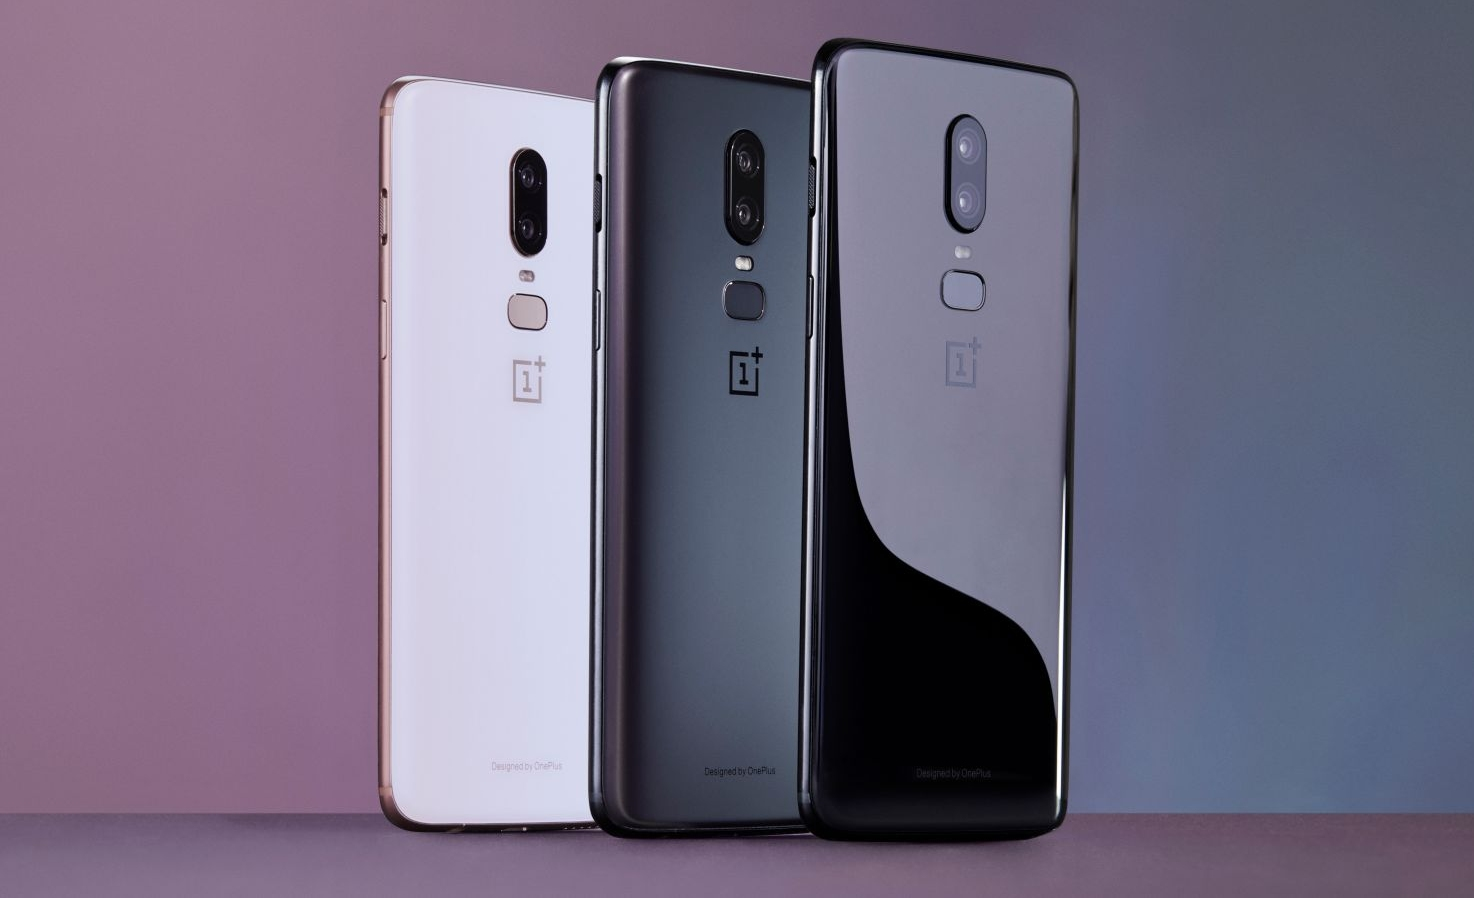 Million OnePlus 6 Devices Were Sold Within a Month